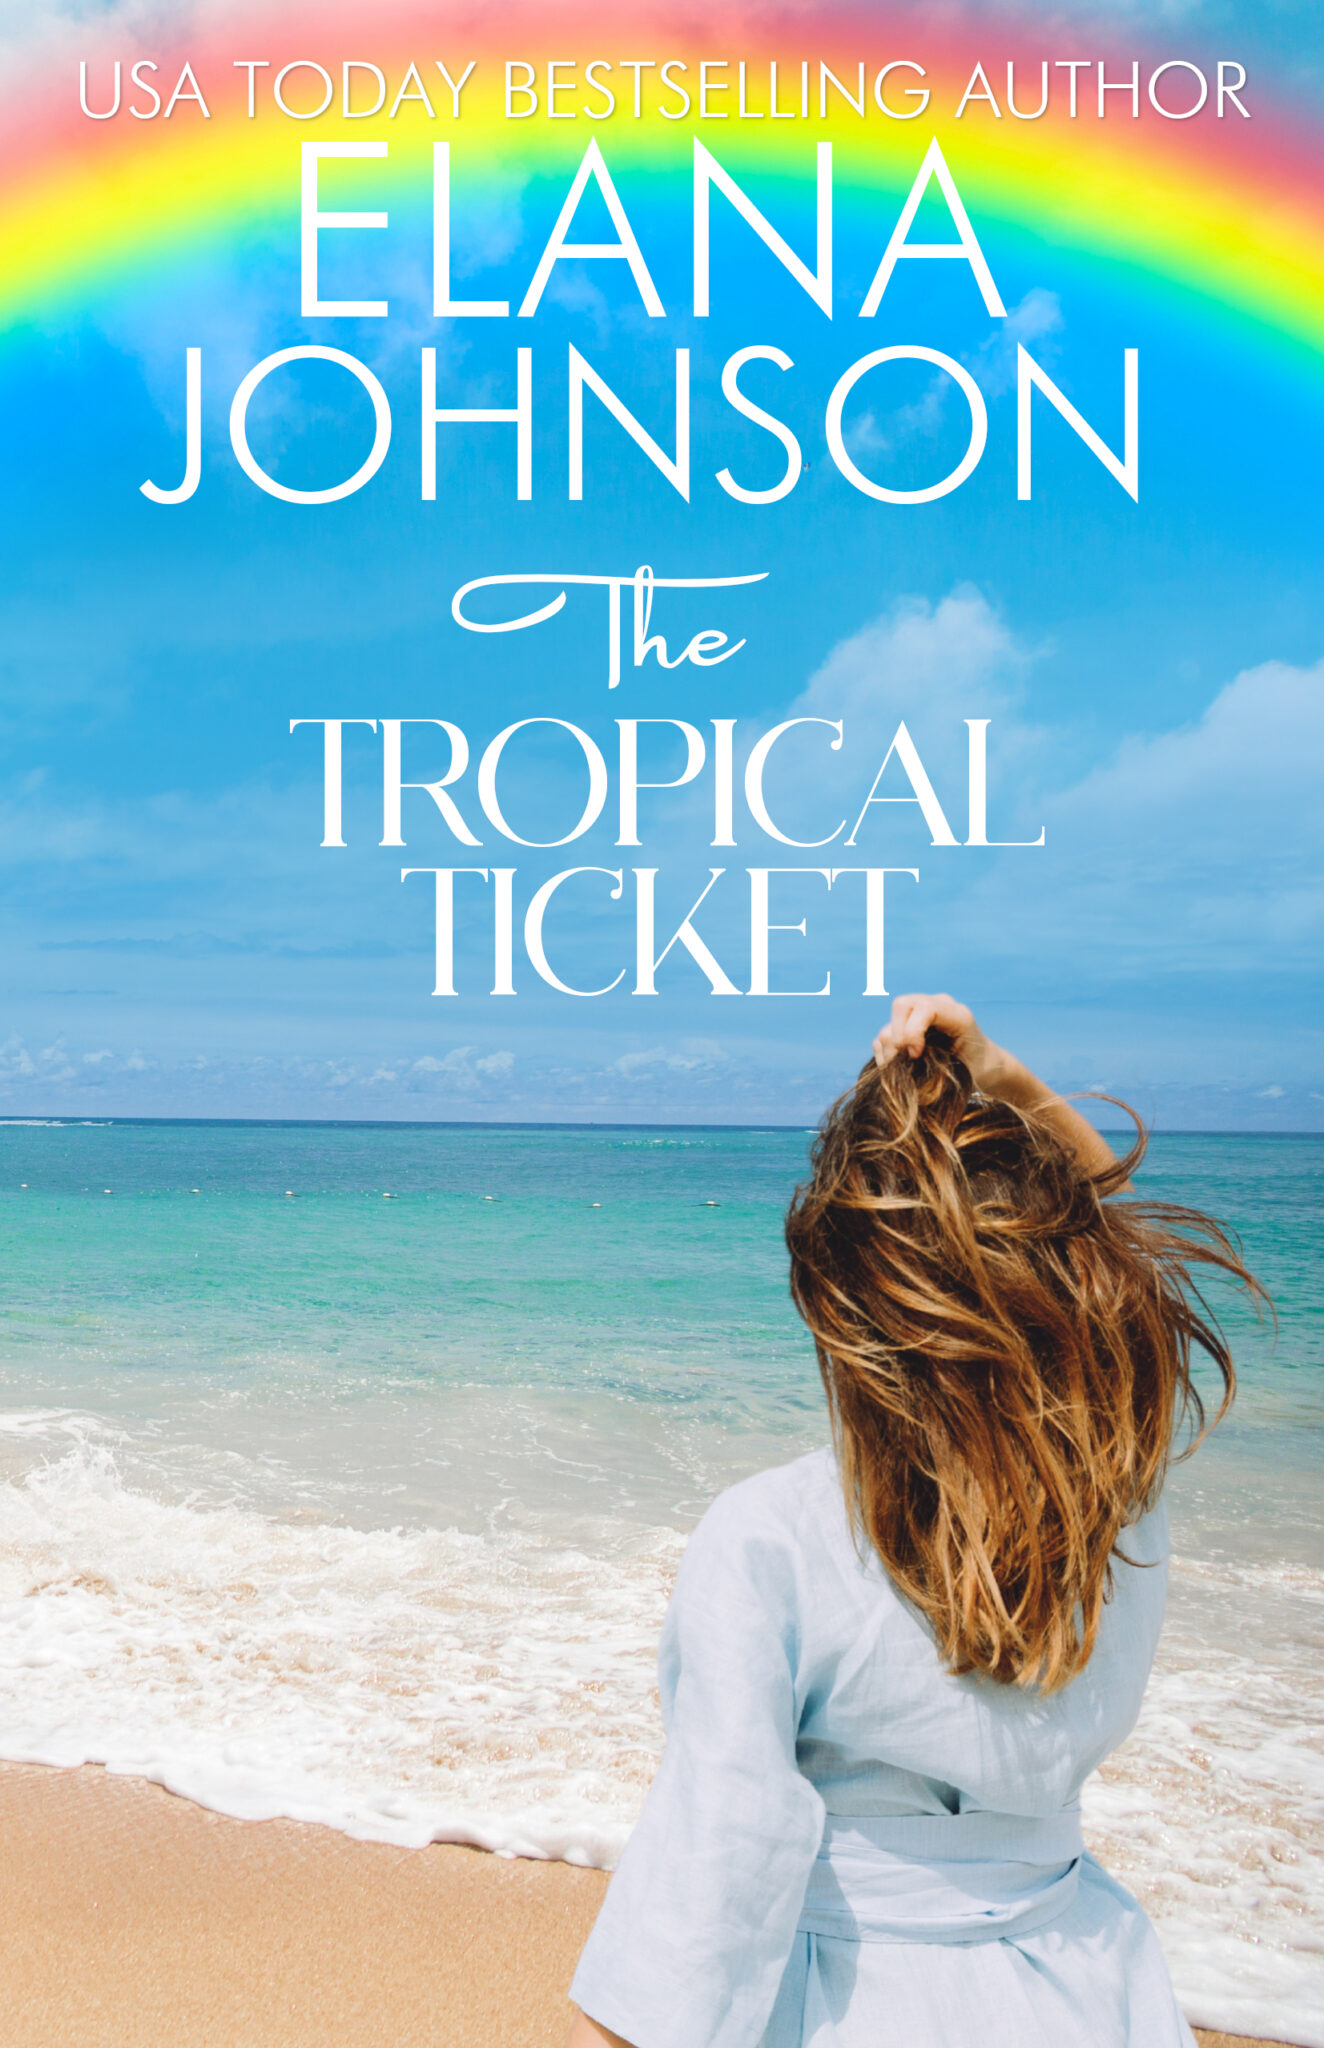 The Tropical Ticket EBOOK flat